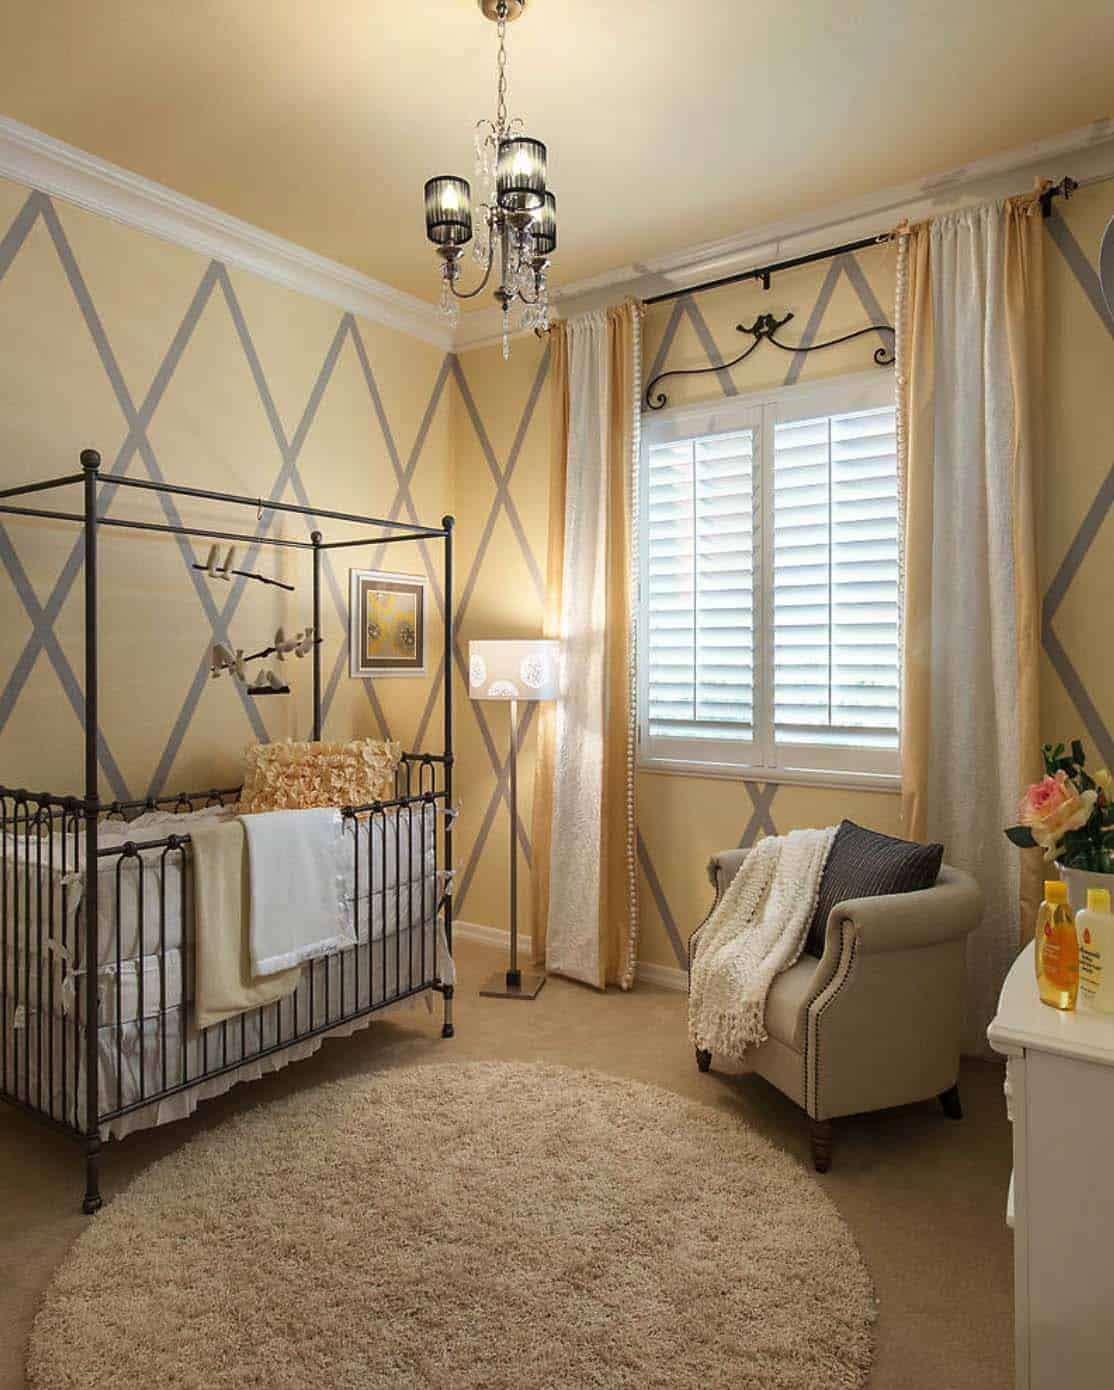 Stylish Nursery Decorating Ideas-21-1 Kindesign